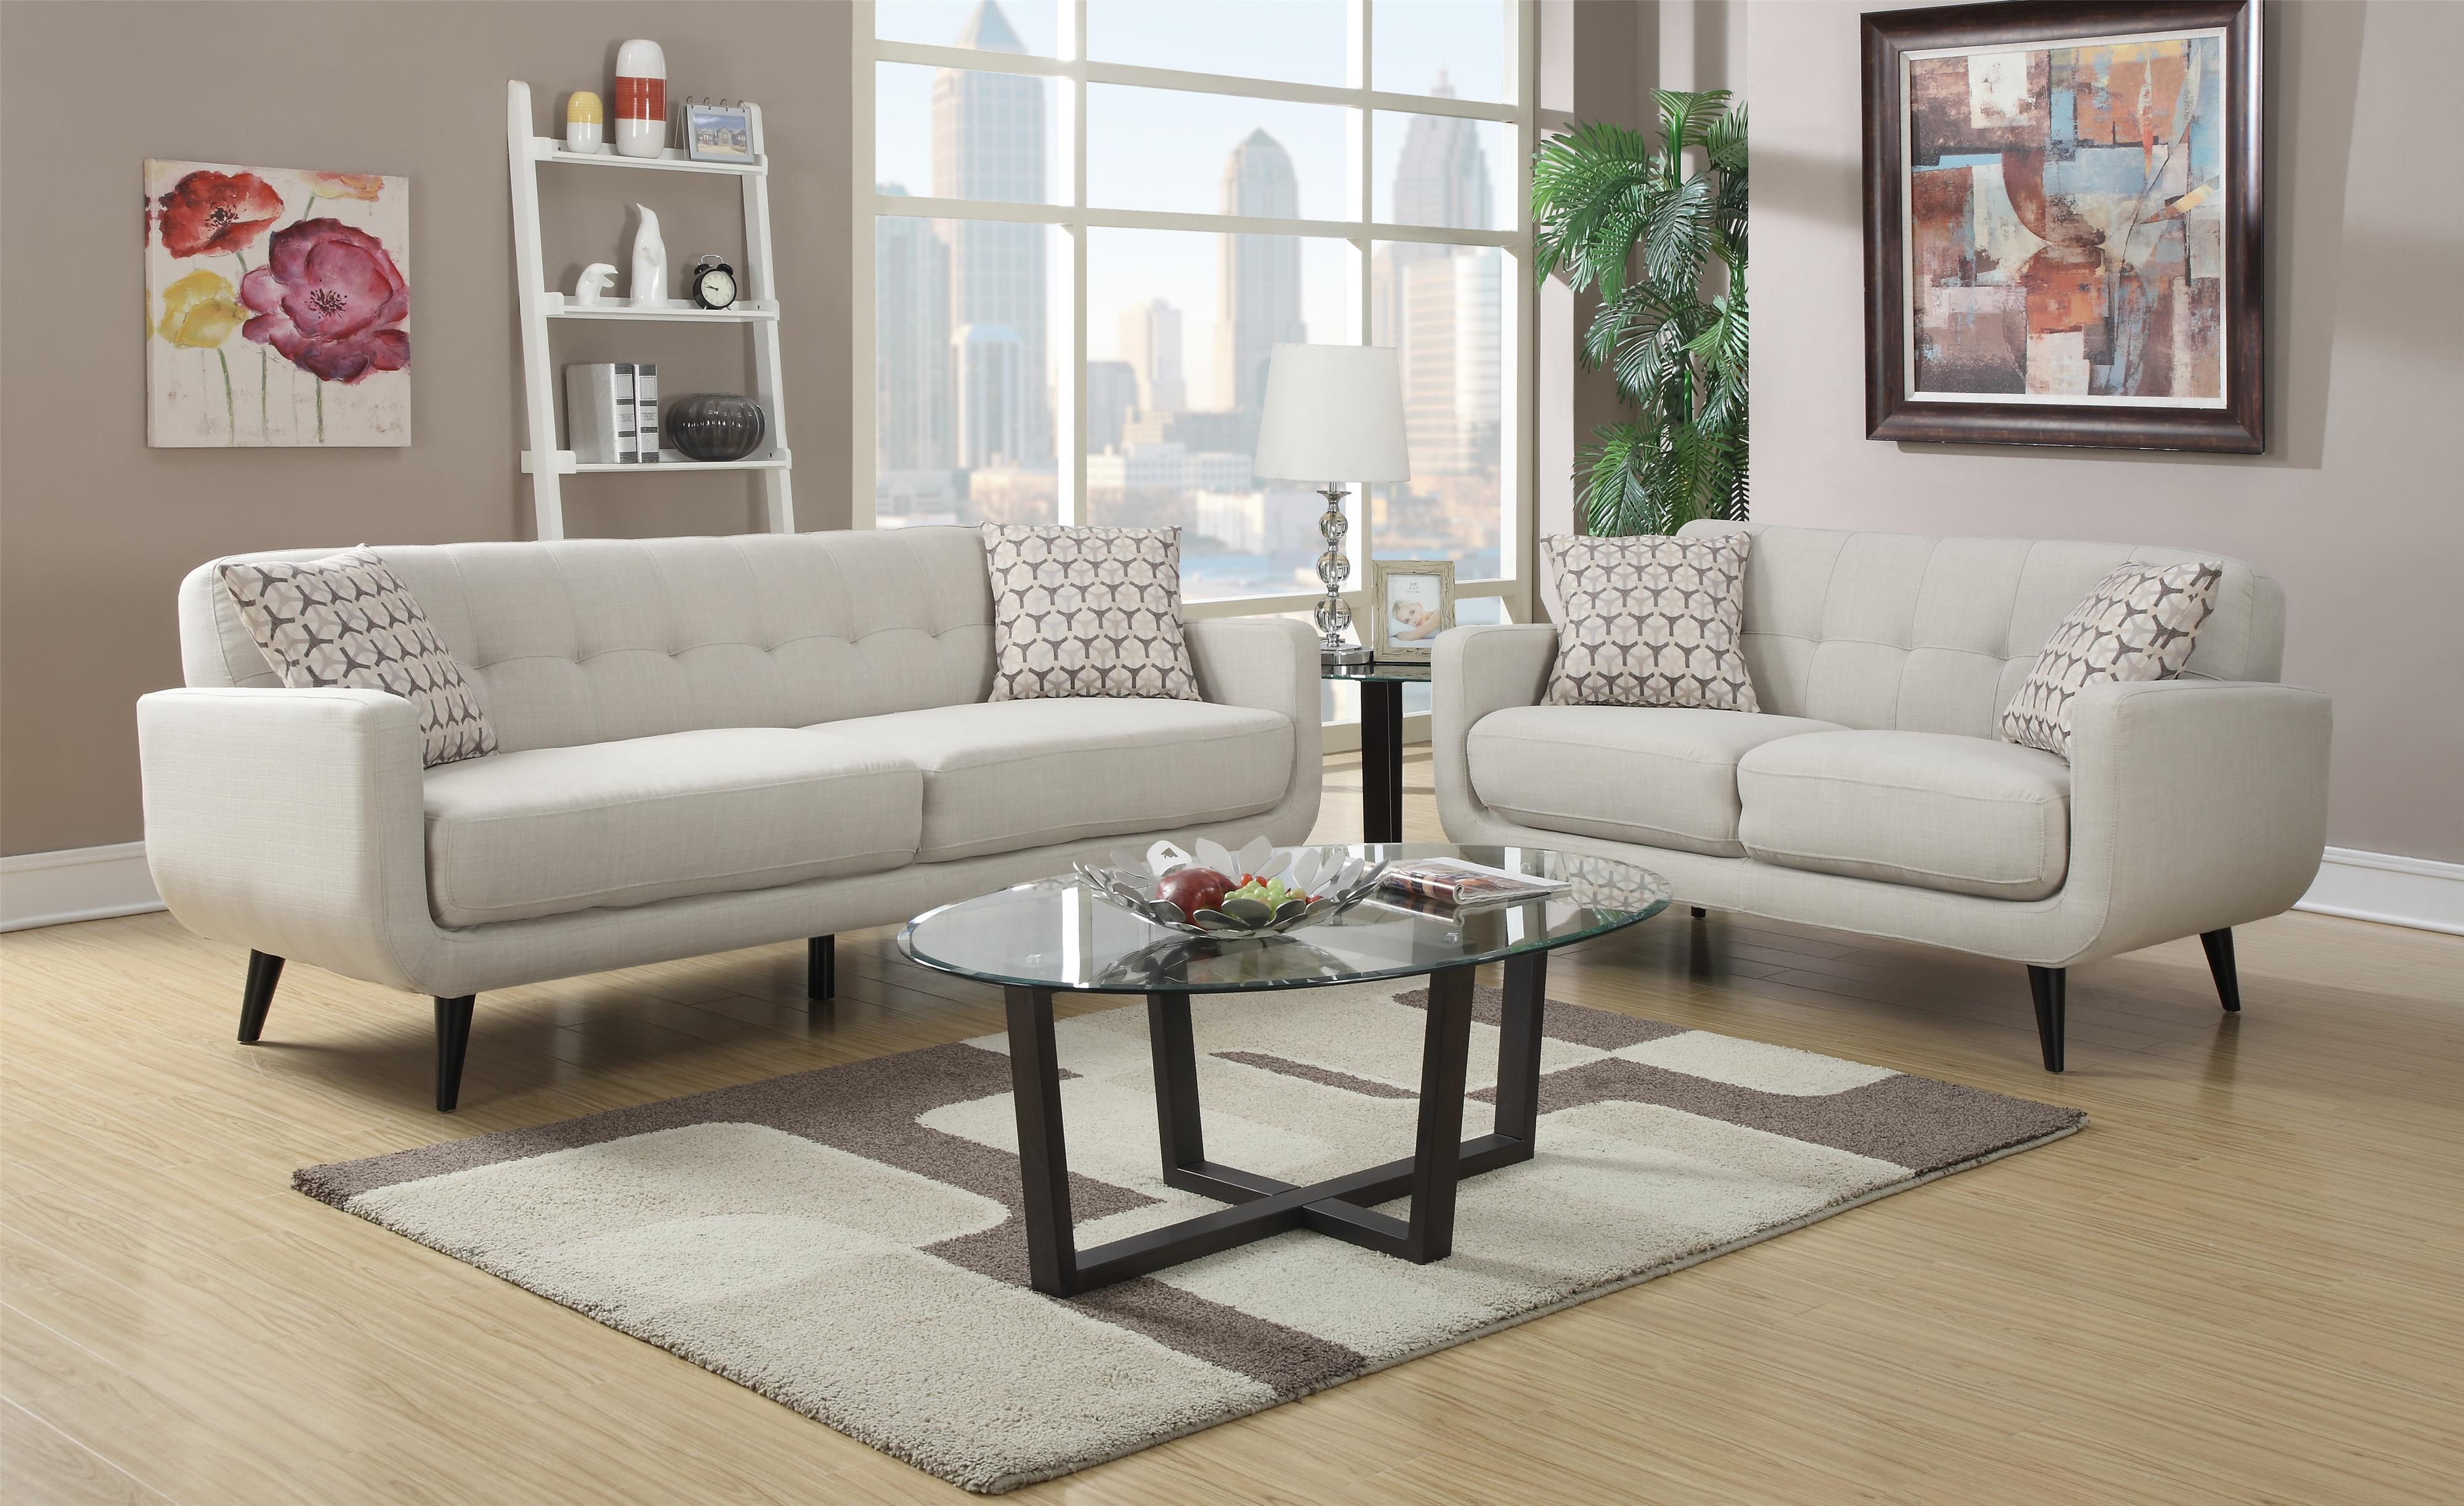 Hadley Stationary Living Room Group by Elements International at Wilcox Furniture